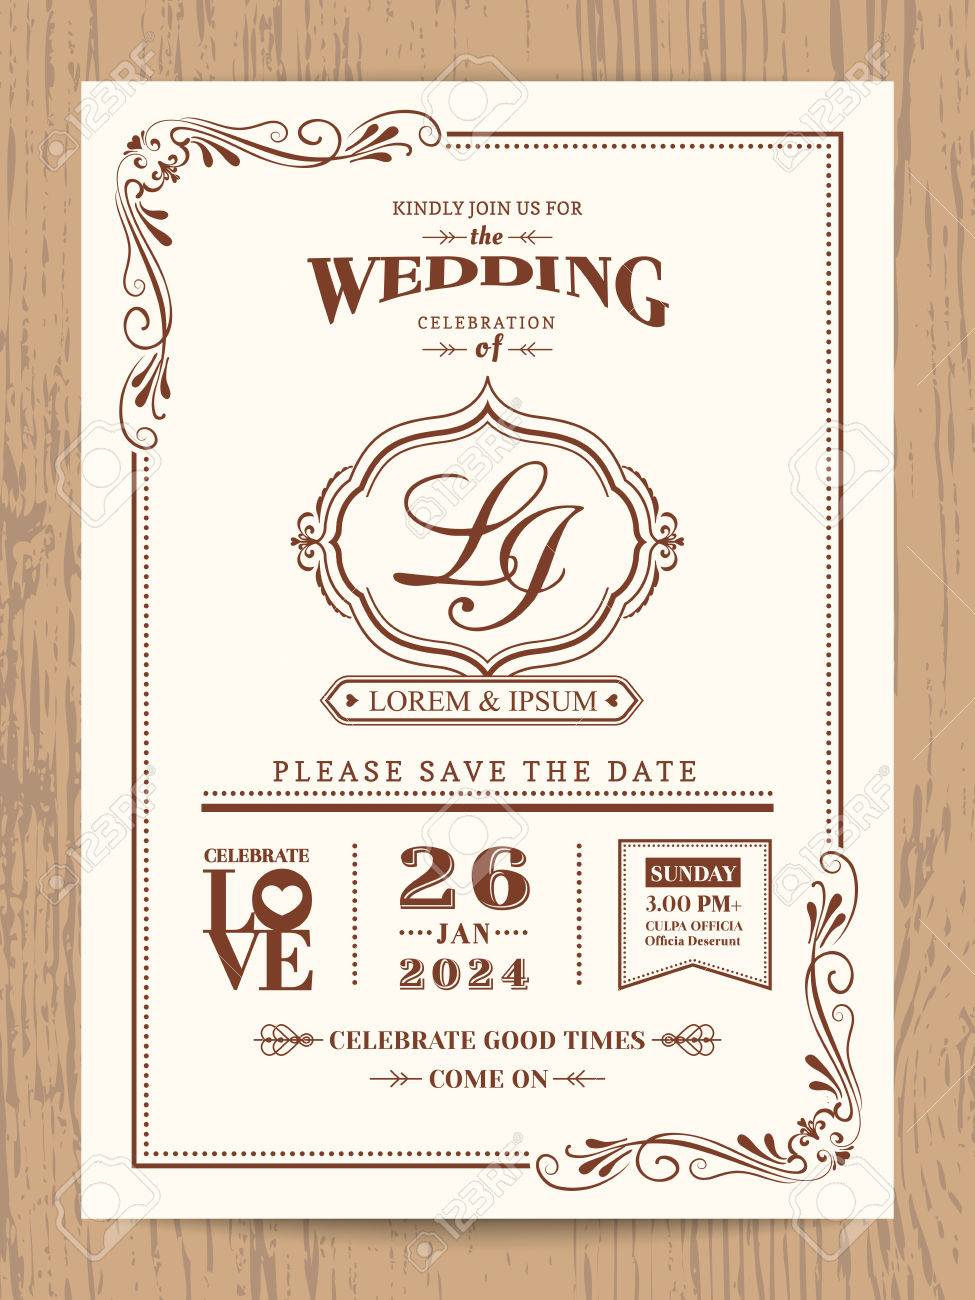 Classic Vintage Wedding Invitation Card With Brown Color Border ...